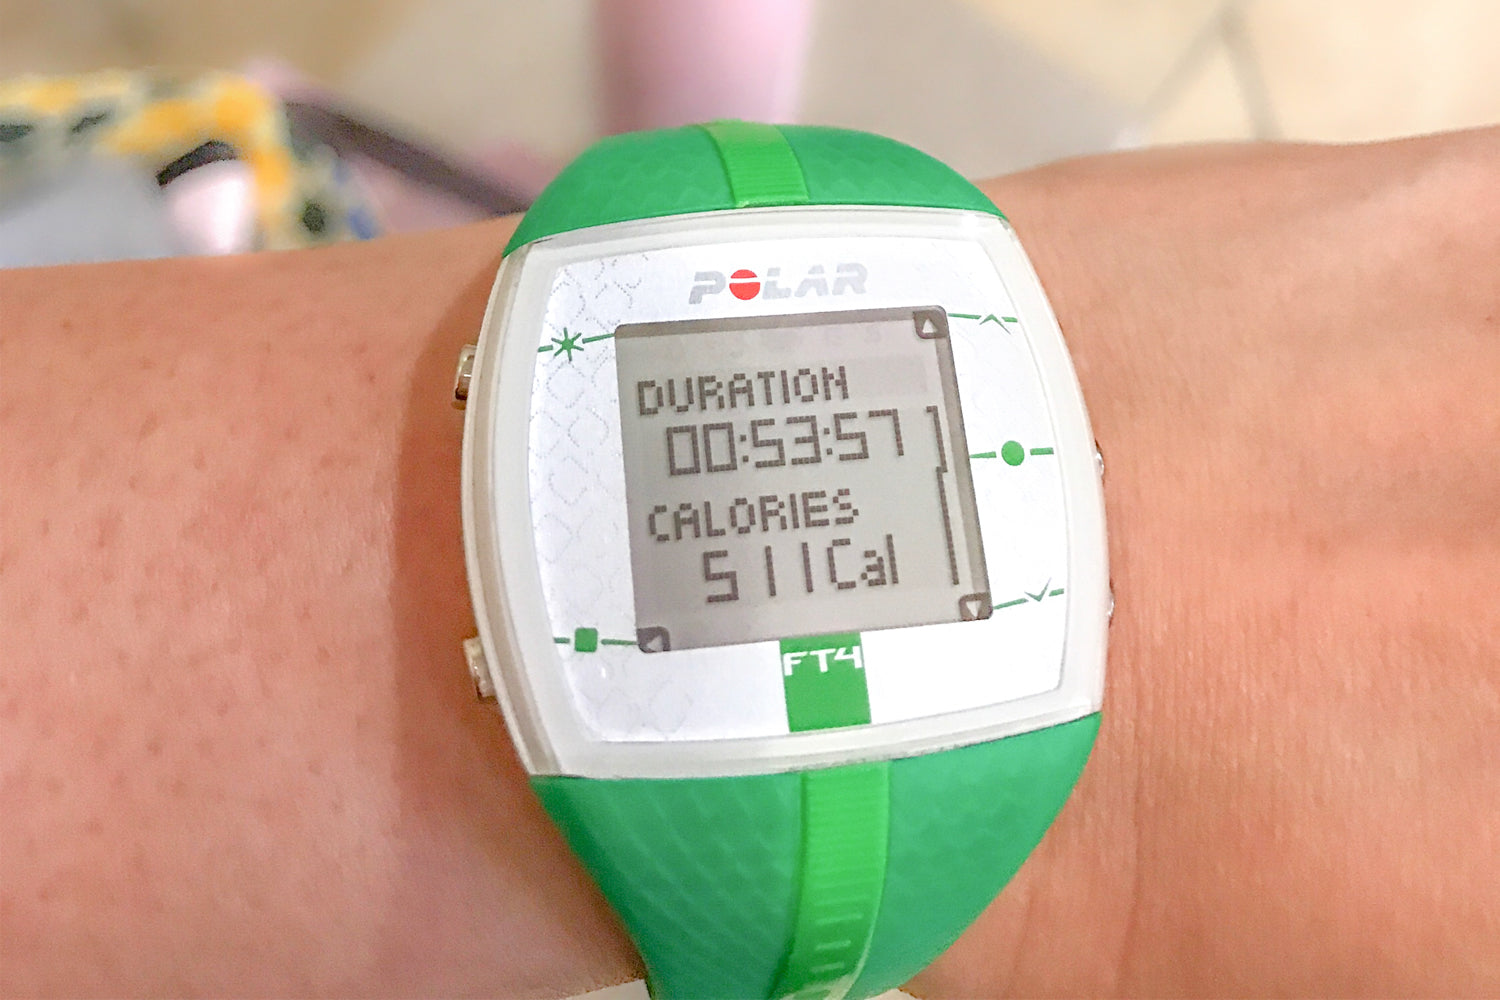 Polar heart rate monitor watch with calorie count from workout - Dianne's Challenge